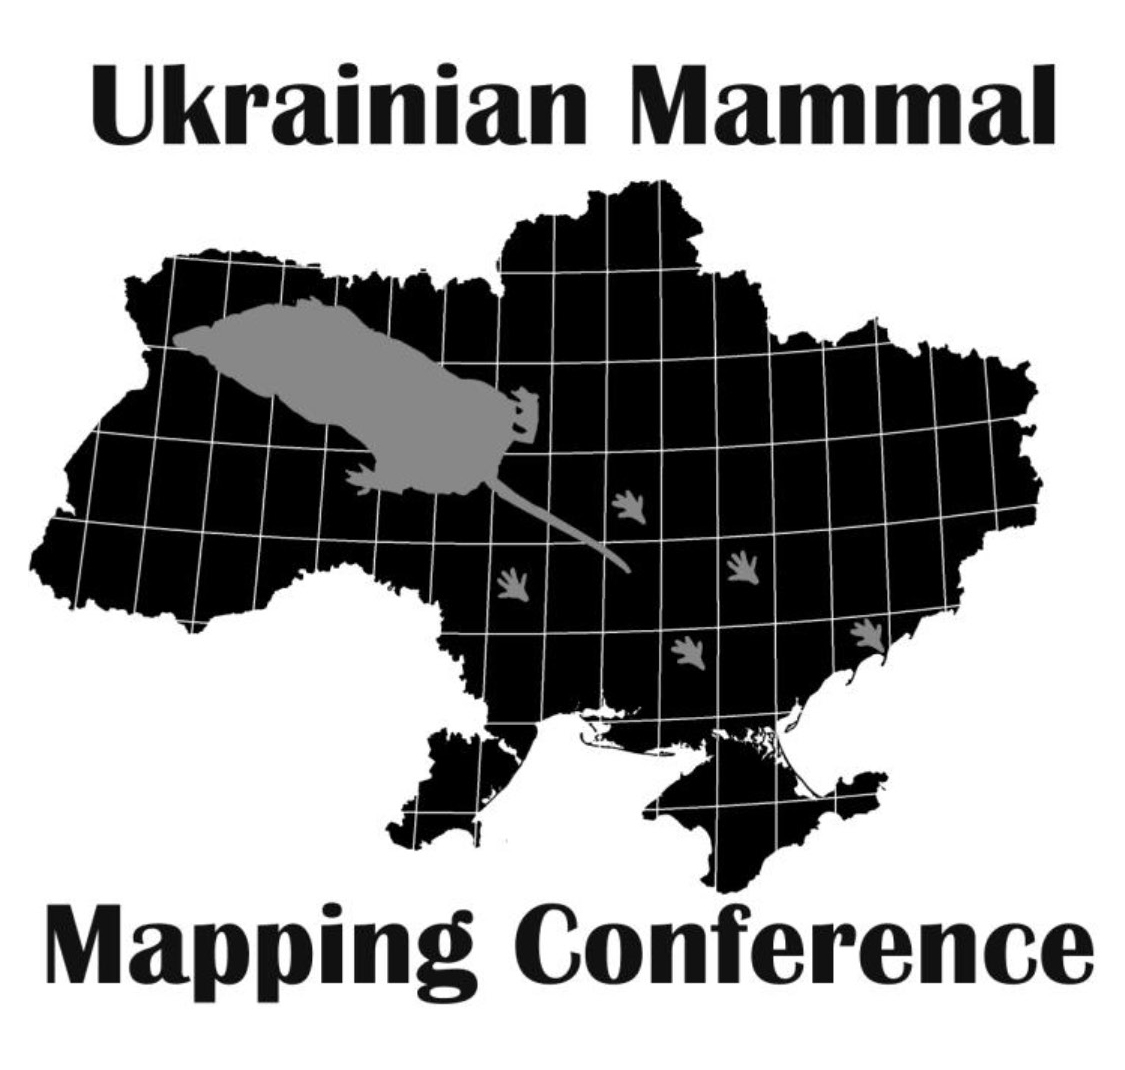 Ukrainian Mammal Mapping Conference